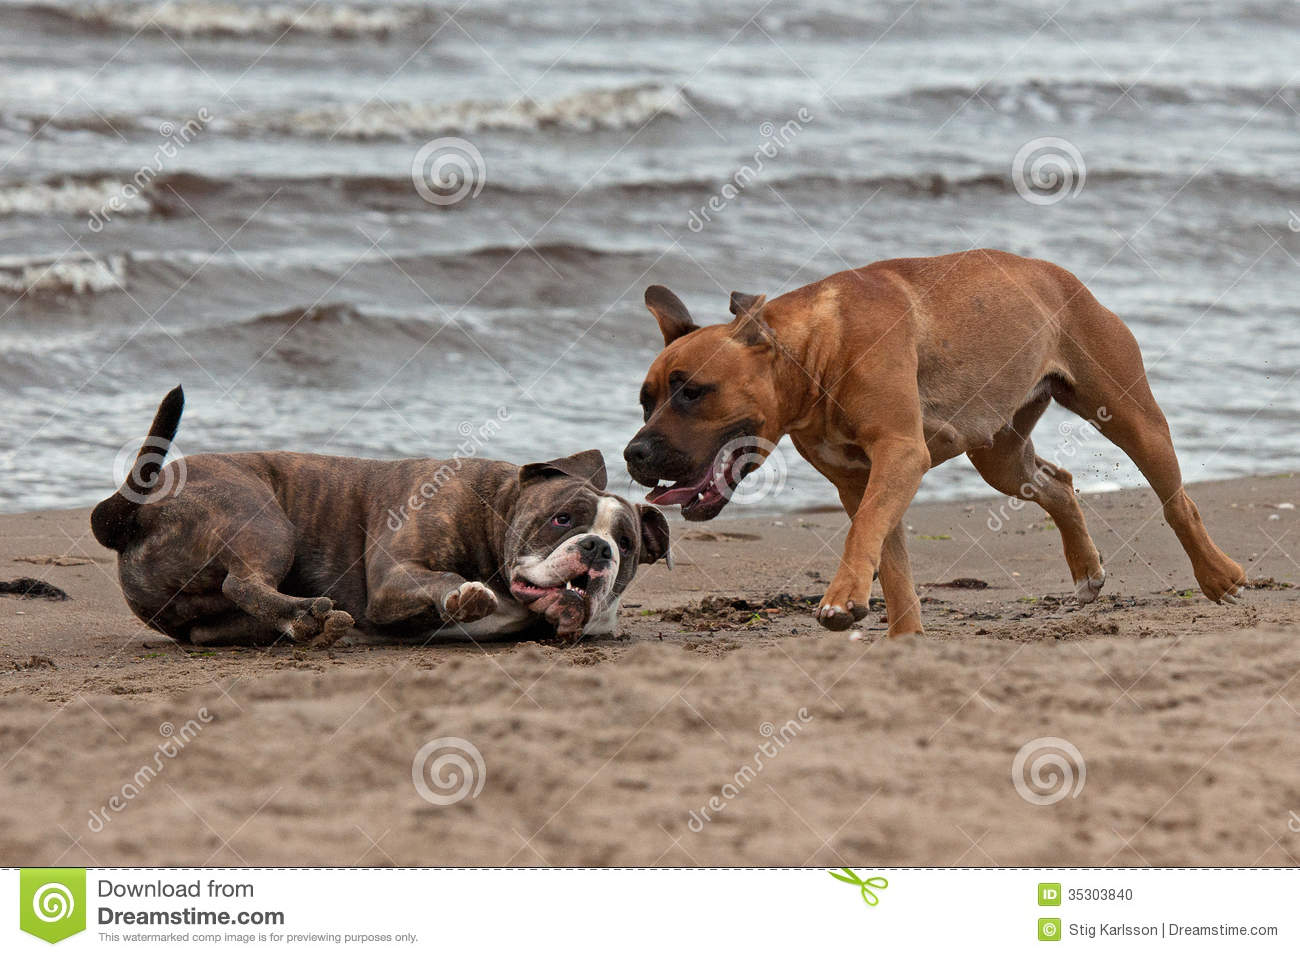 Bulldog and American staffordshire terrier met 3